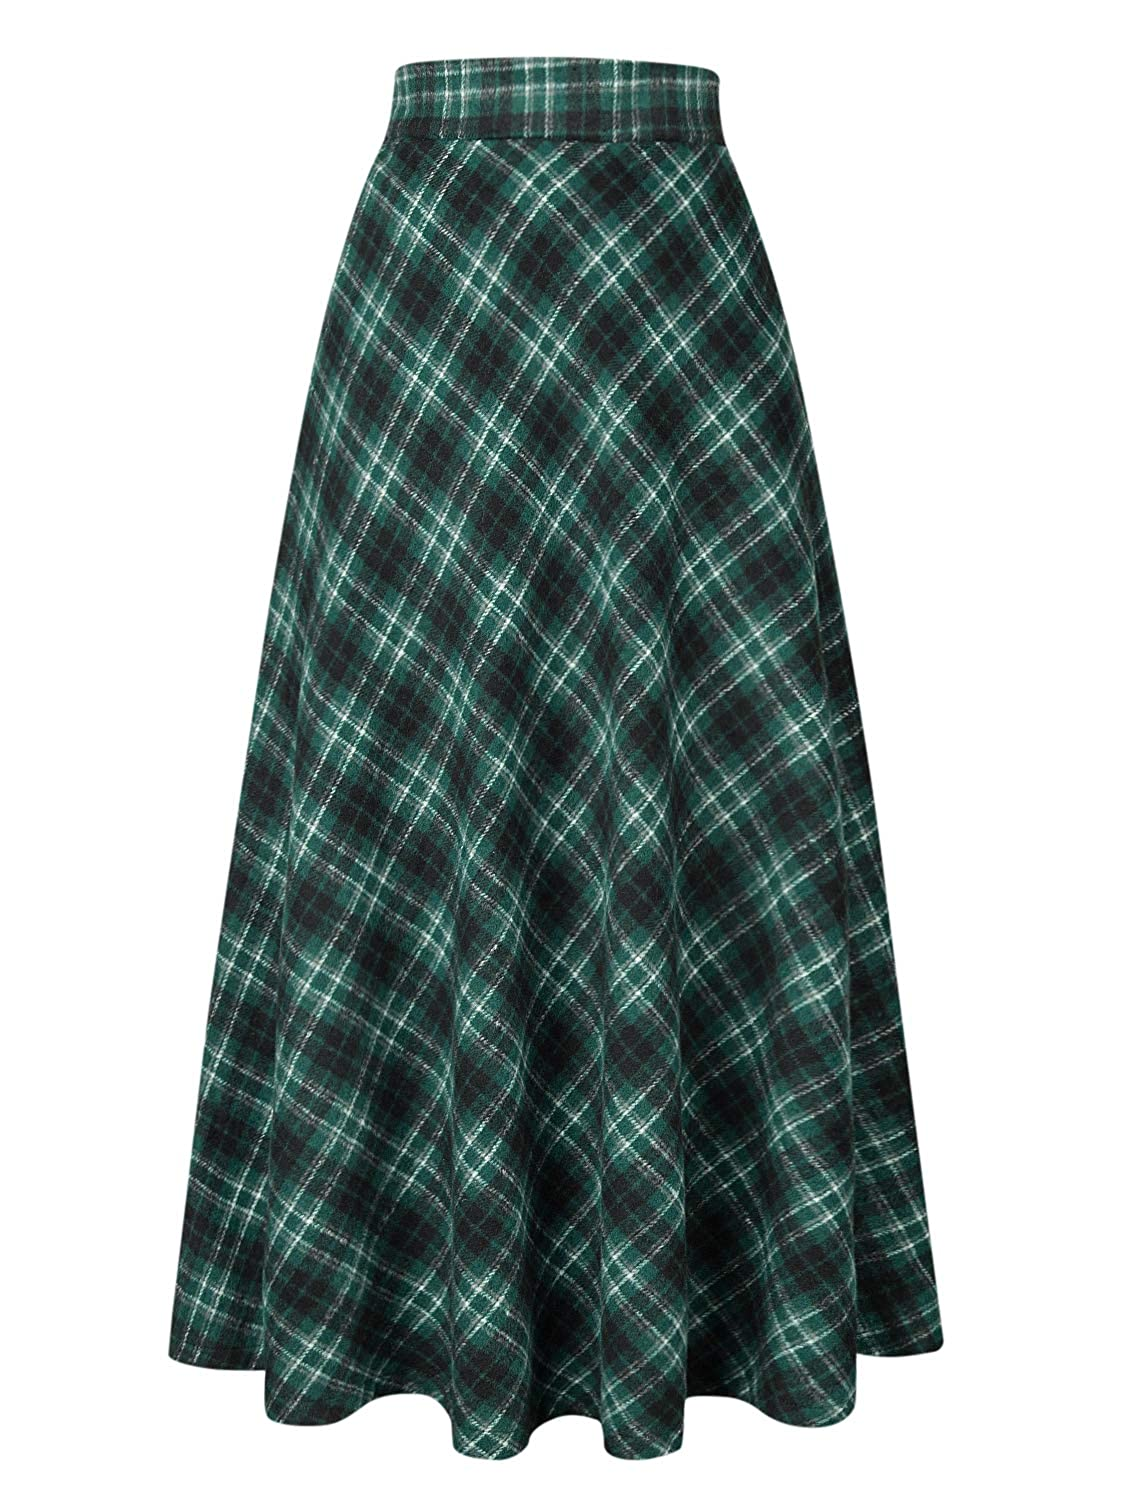 1900 -1910s Edwardian Fashion, Clothing & Costumes Choies Womens High Waist A-line Flared Long Skirt Winter Fall Midi Skirt $38.99 AT vintagedancer.com